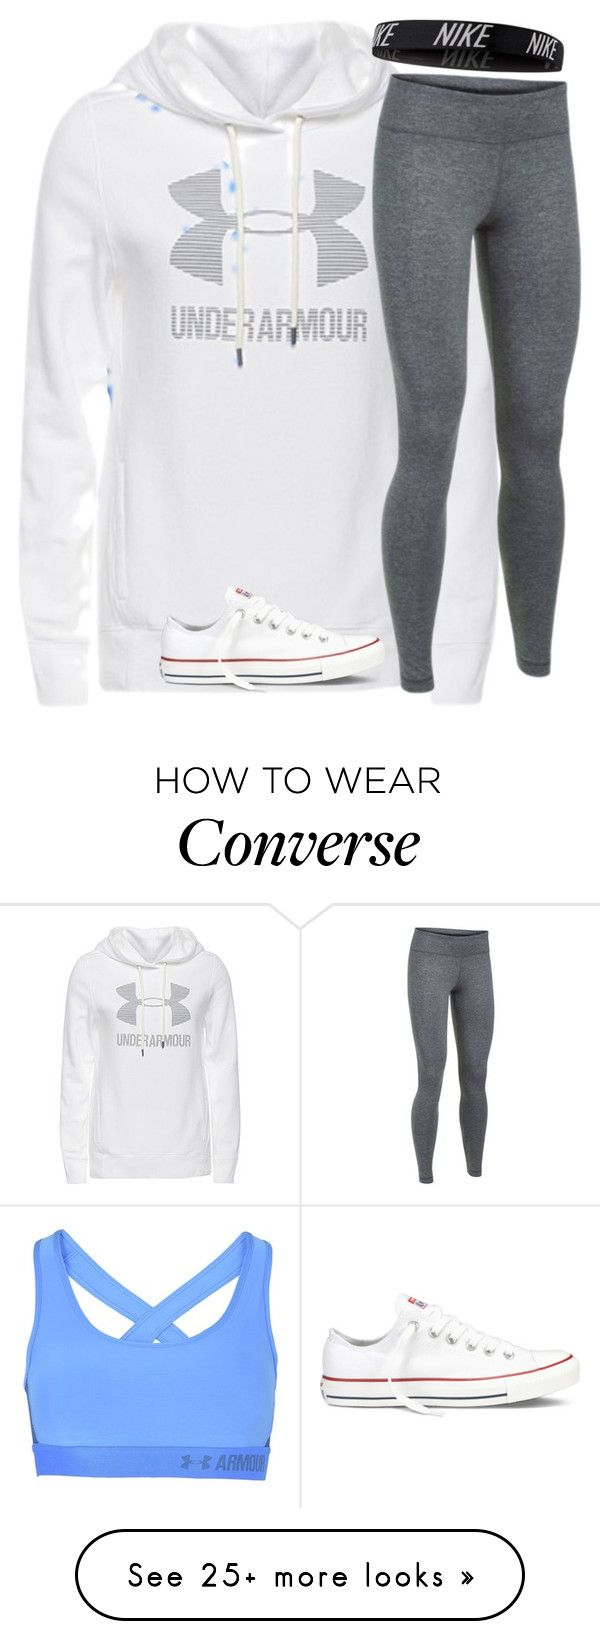 """Untitled #2513"" by laurenatria11 on Polyvore featuring Under Armour, NIKE and Converse"